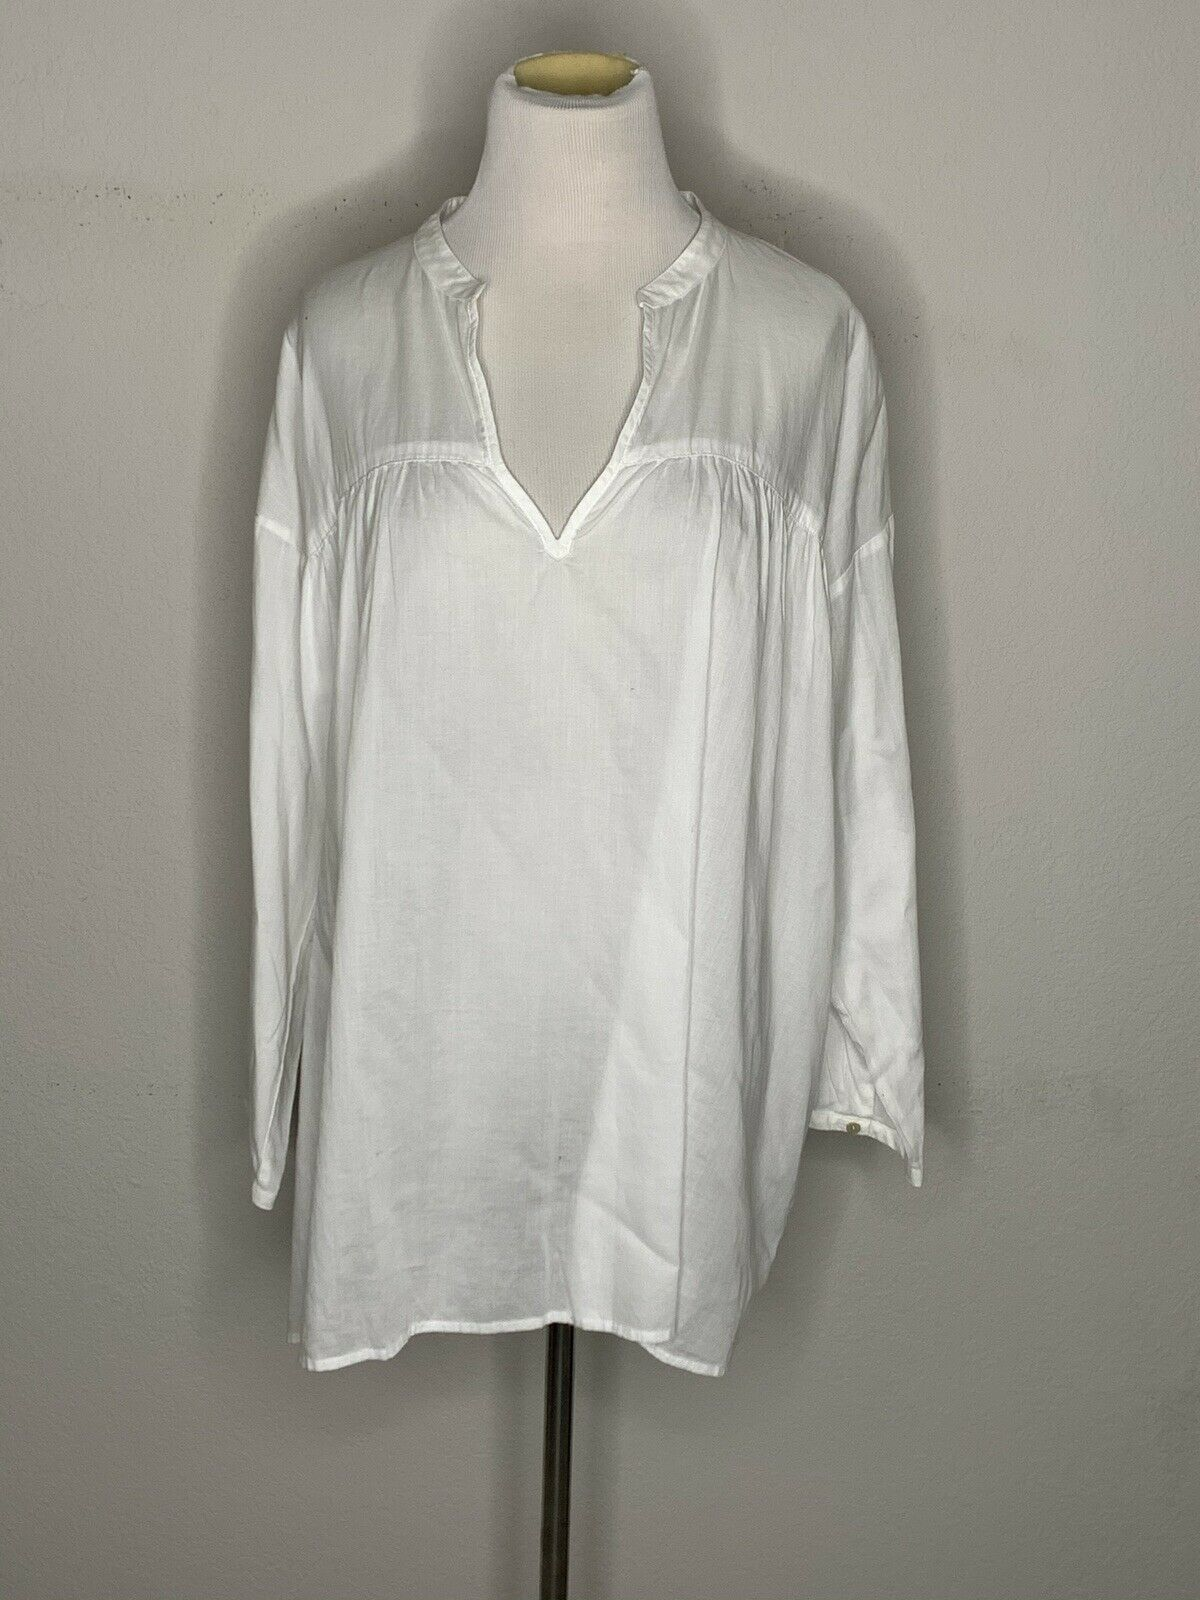 Primary image for Eileen Fisher Womens Organic Cotton Shirt Pullover Blouse V-Neck White Sz L